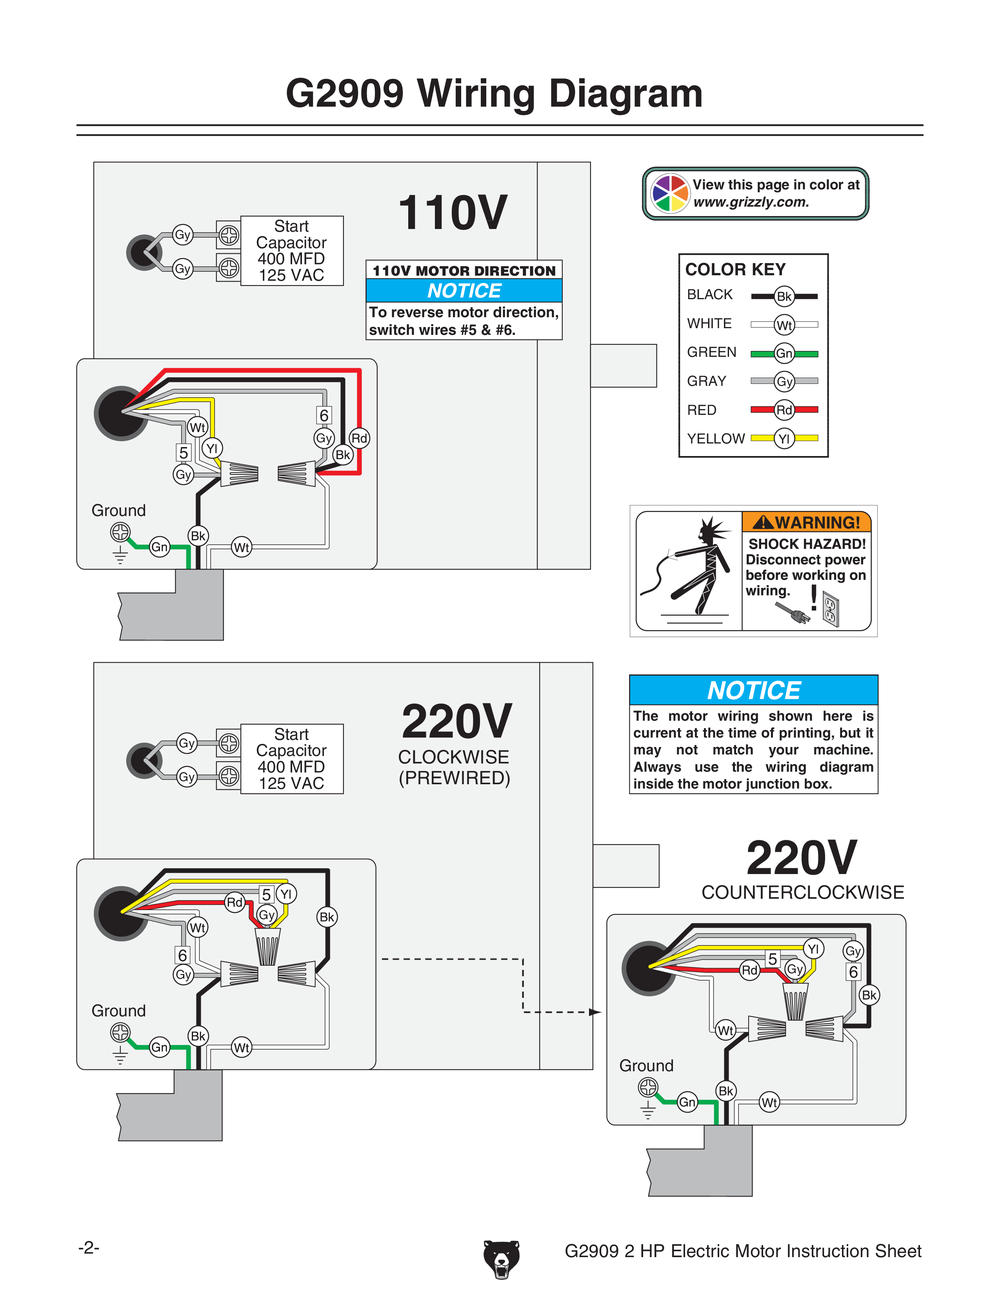 Wiring A 220V Switch Diagram from schematron.org